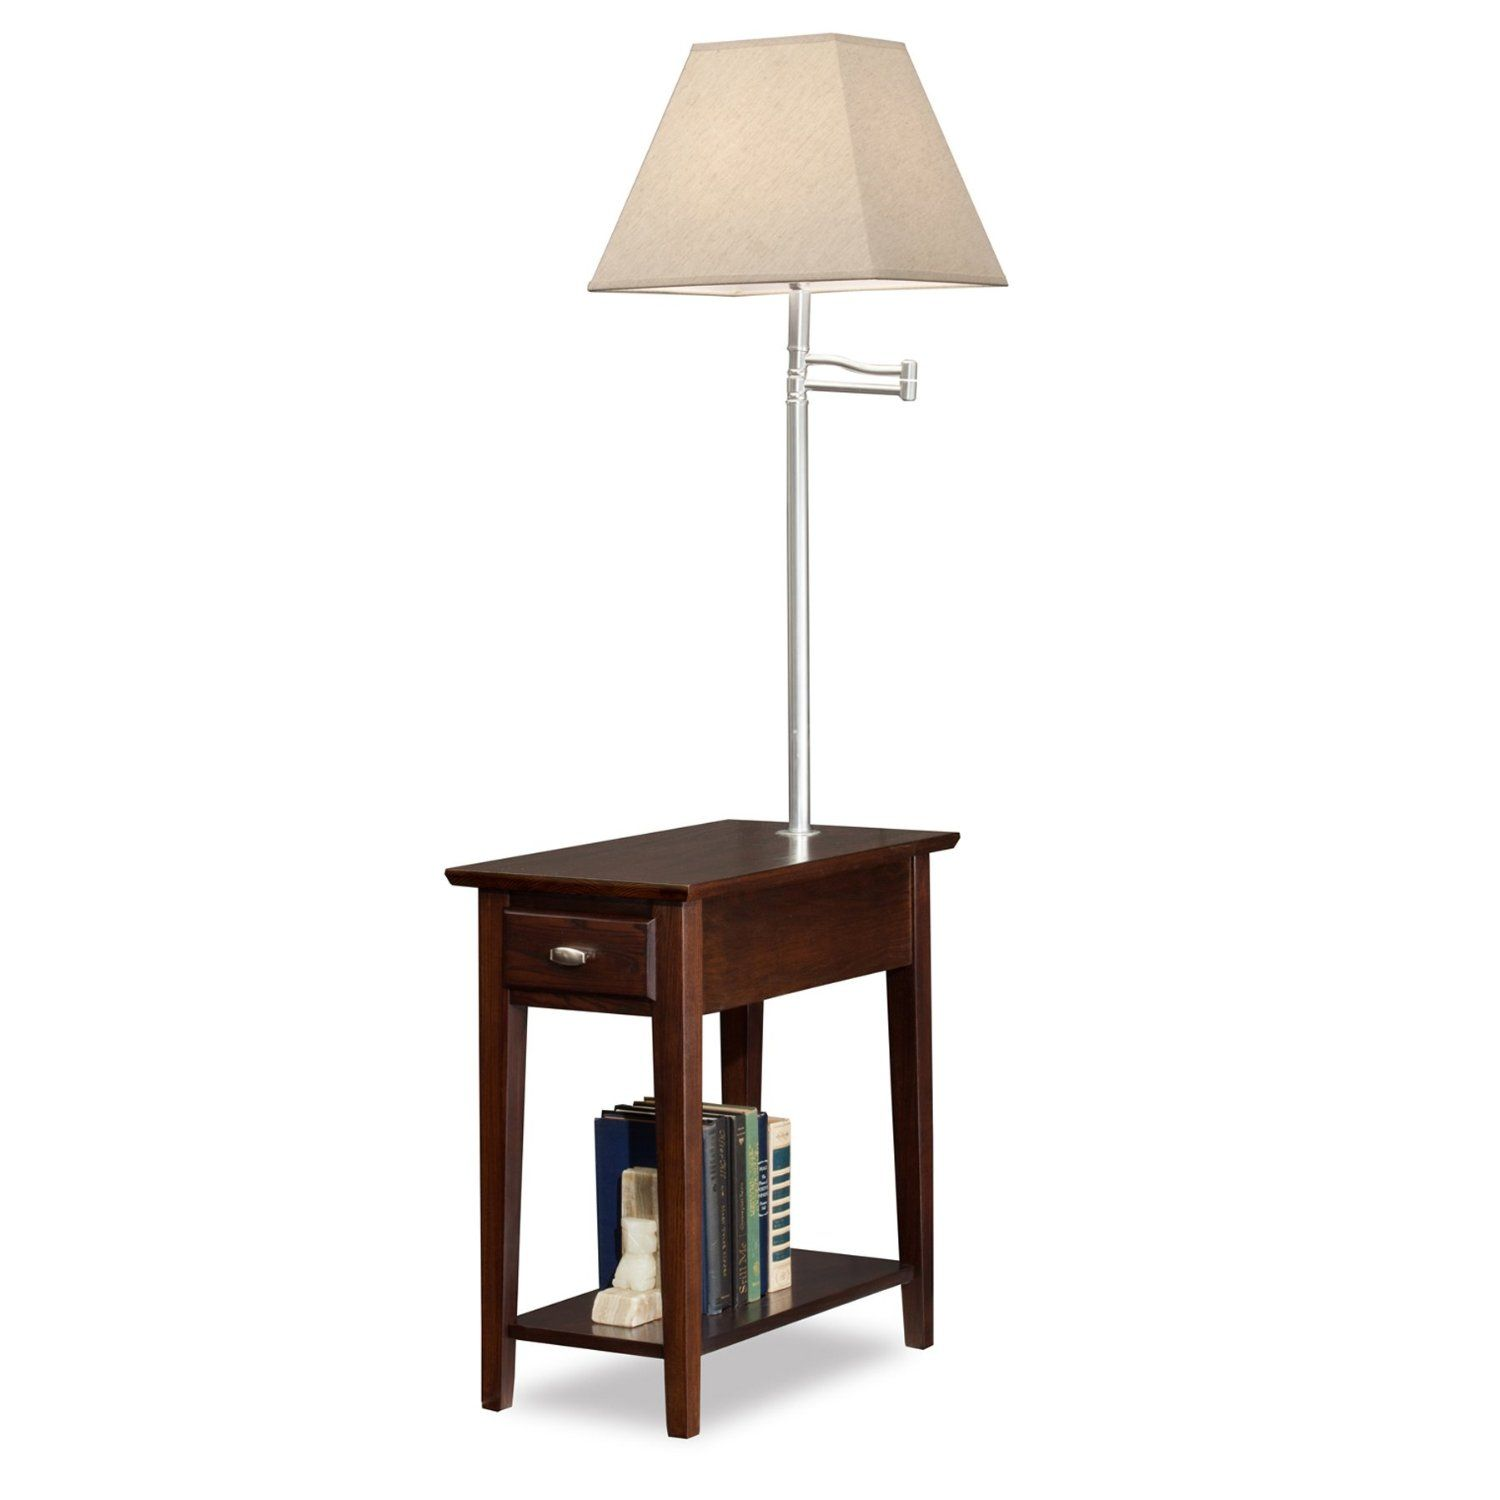 Perfect Table Lamp With Table Attached